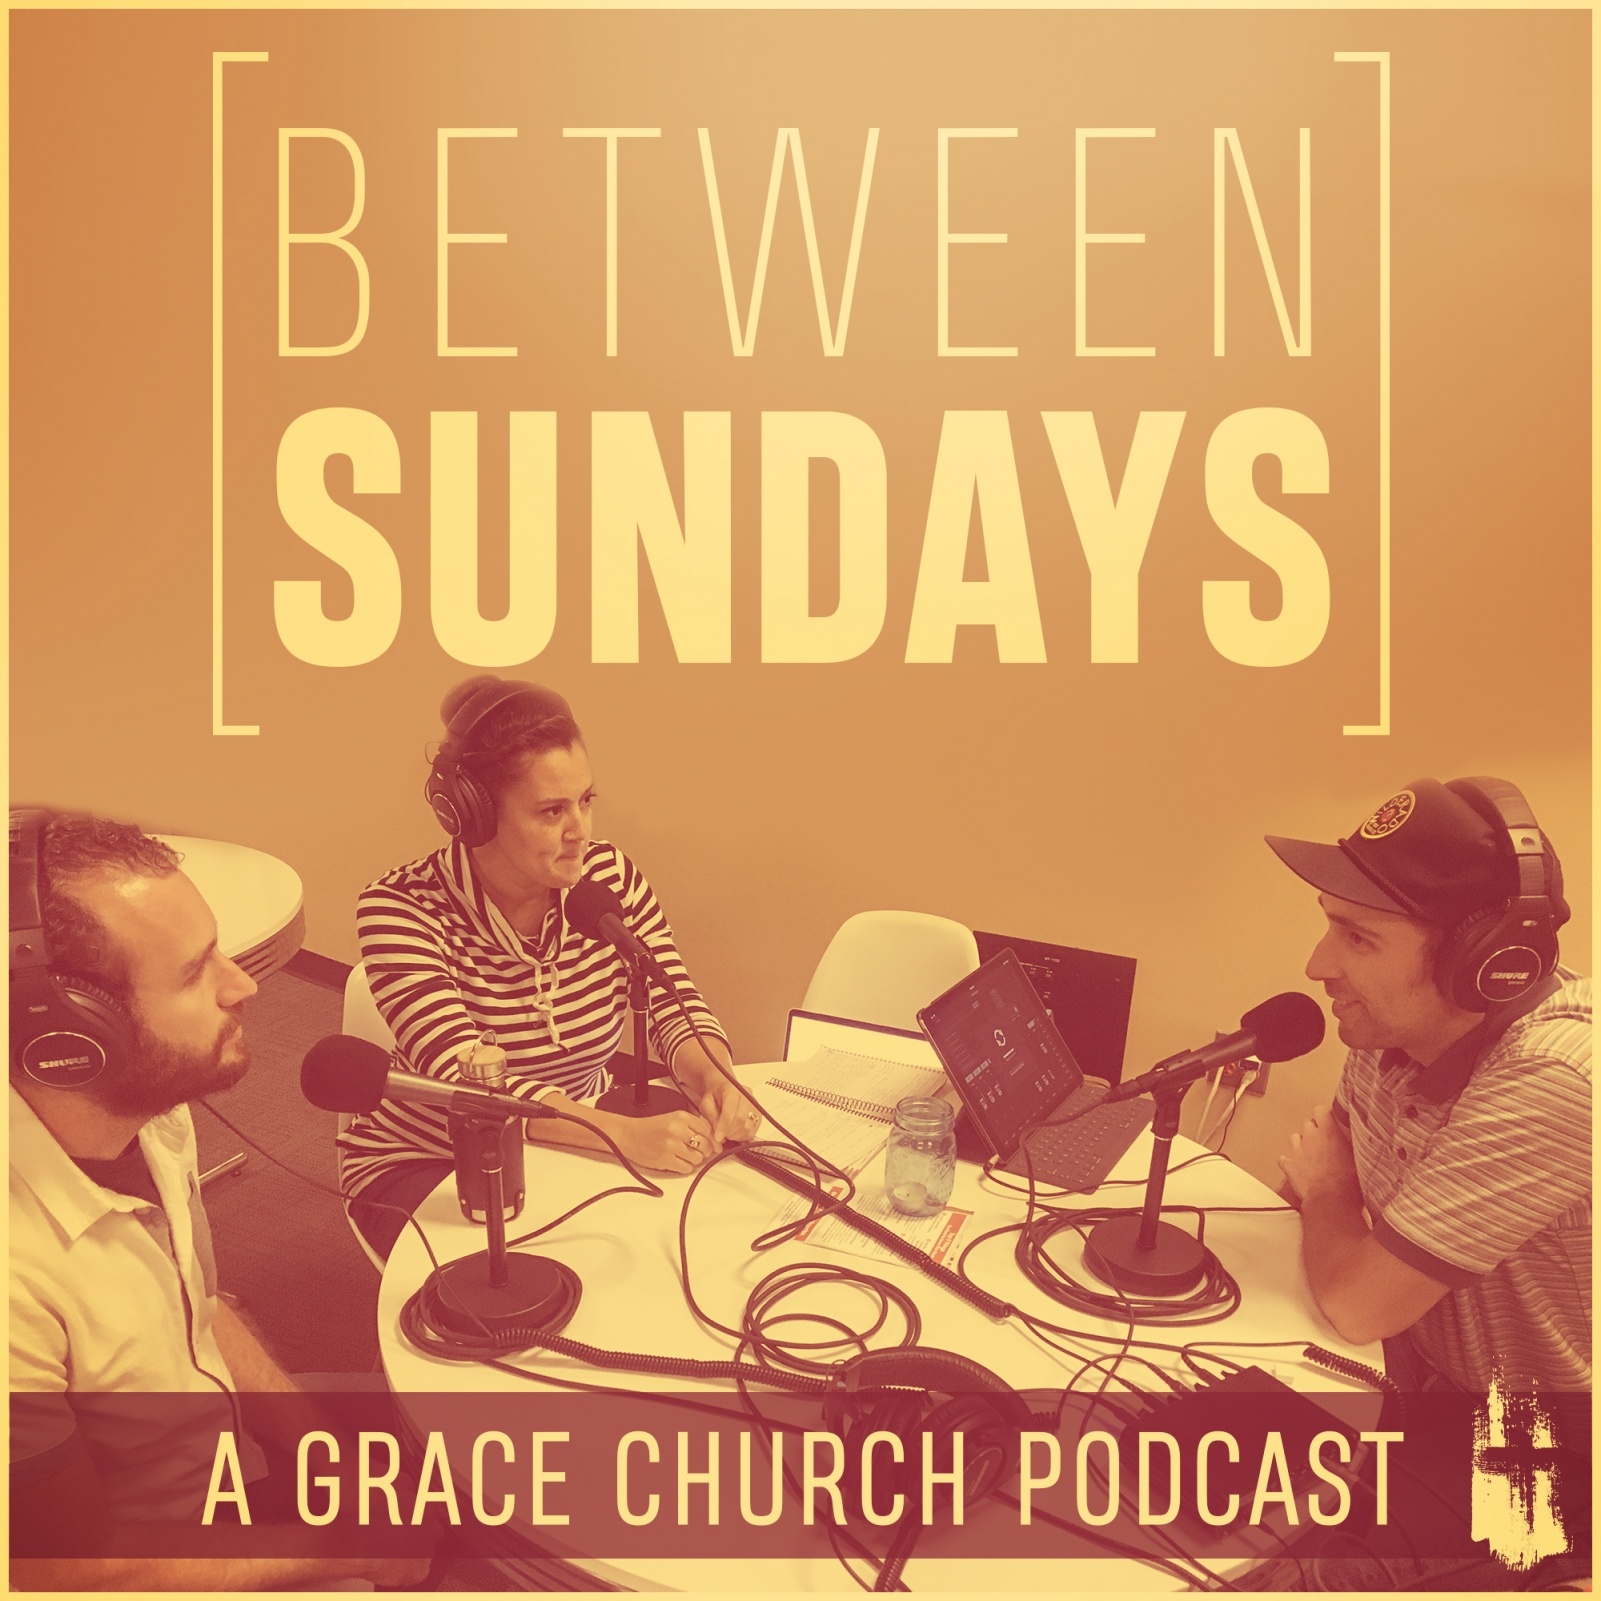 Between Sundays Episode 2 - Parenting